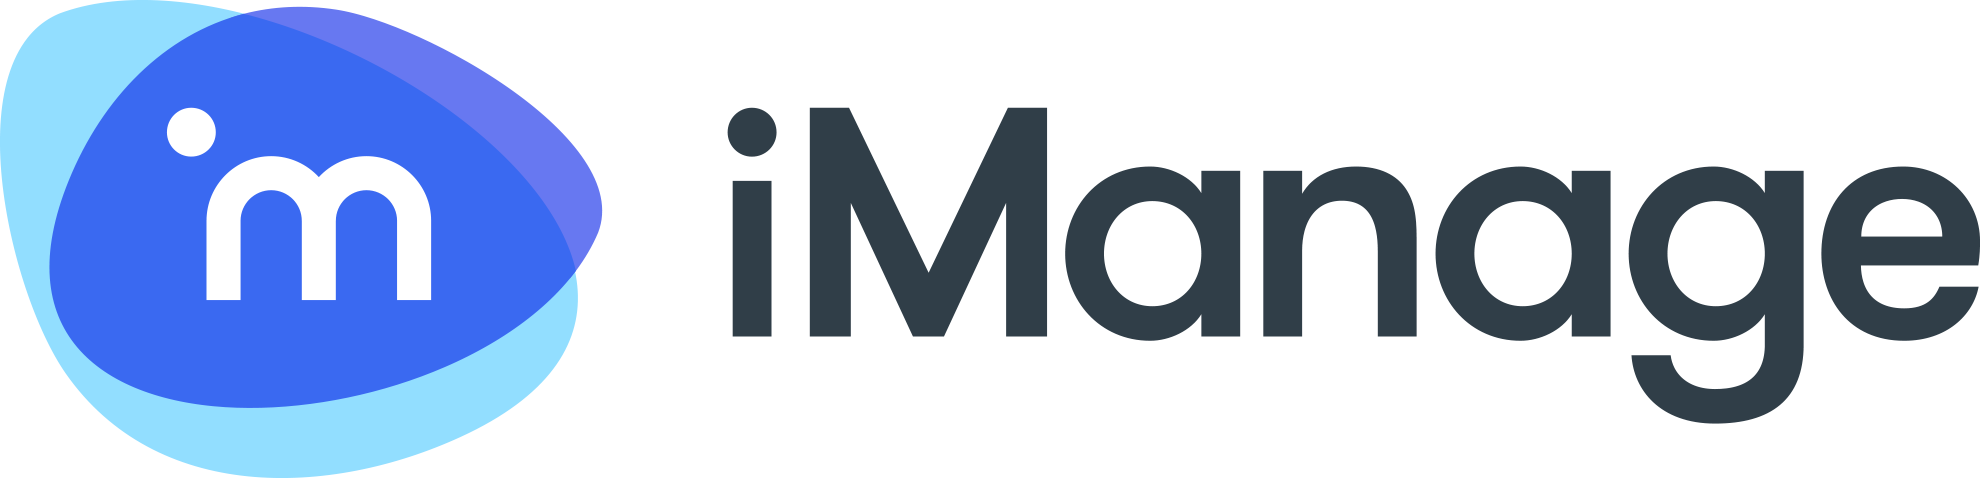 Proud to partner with iManage